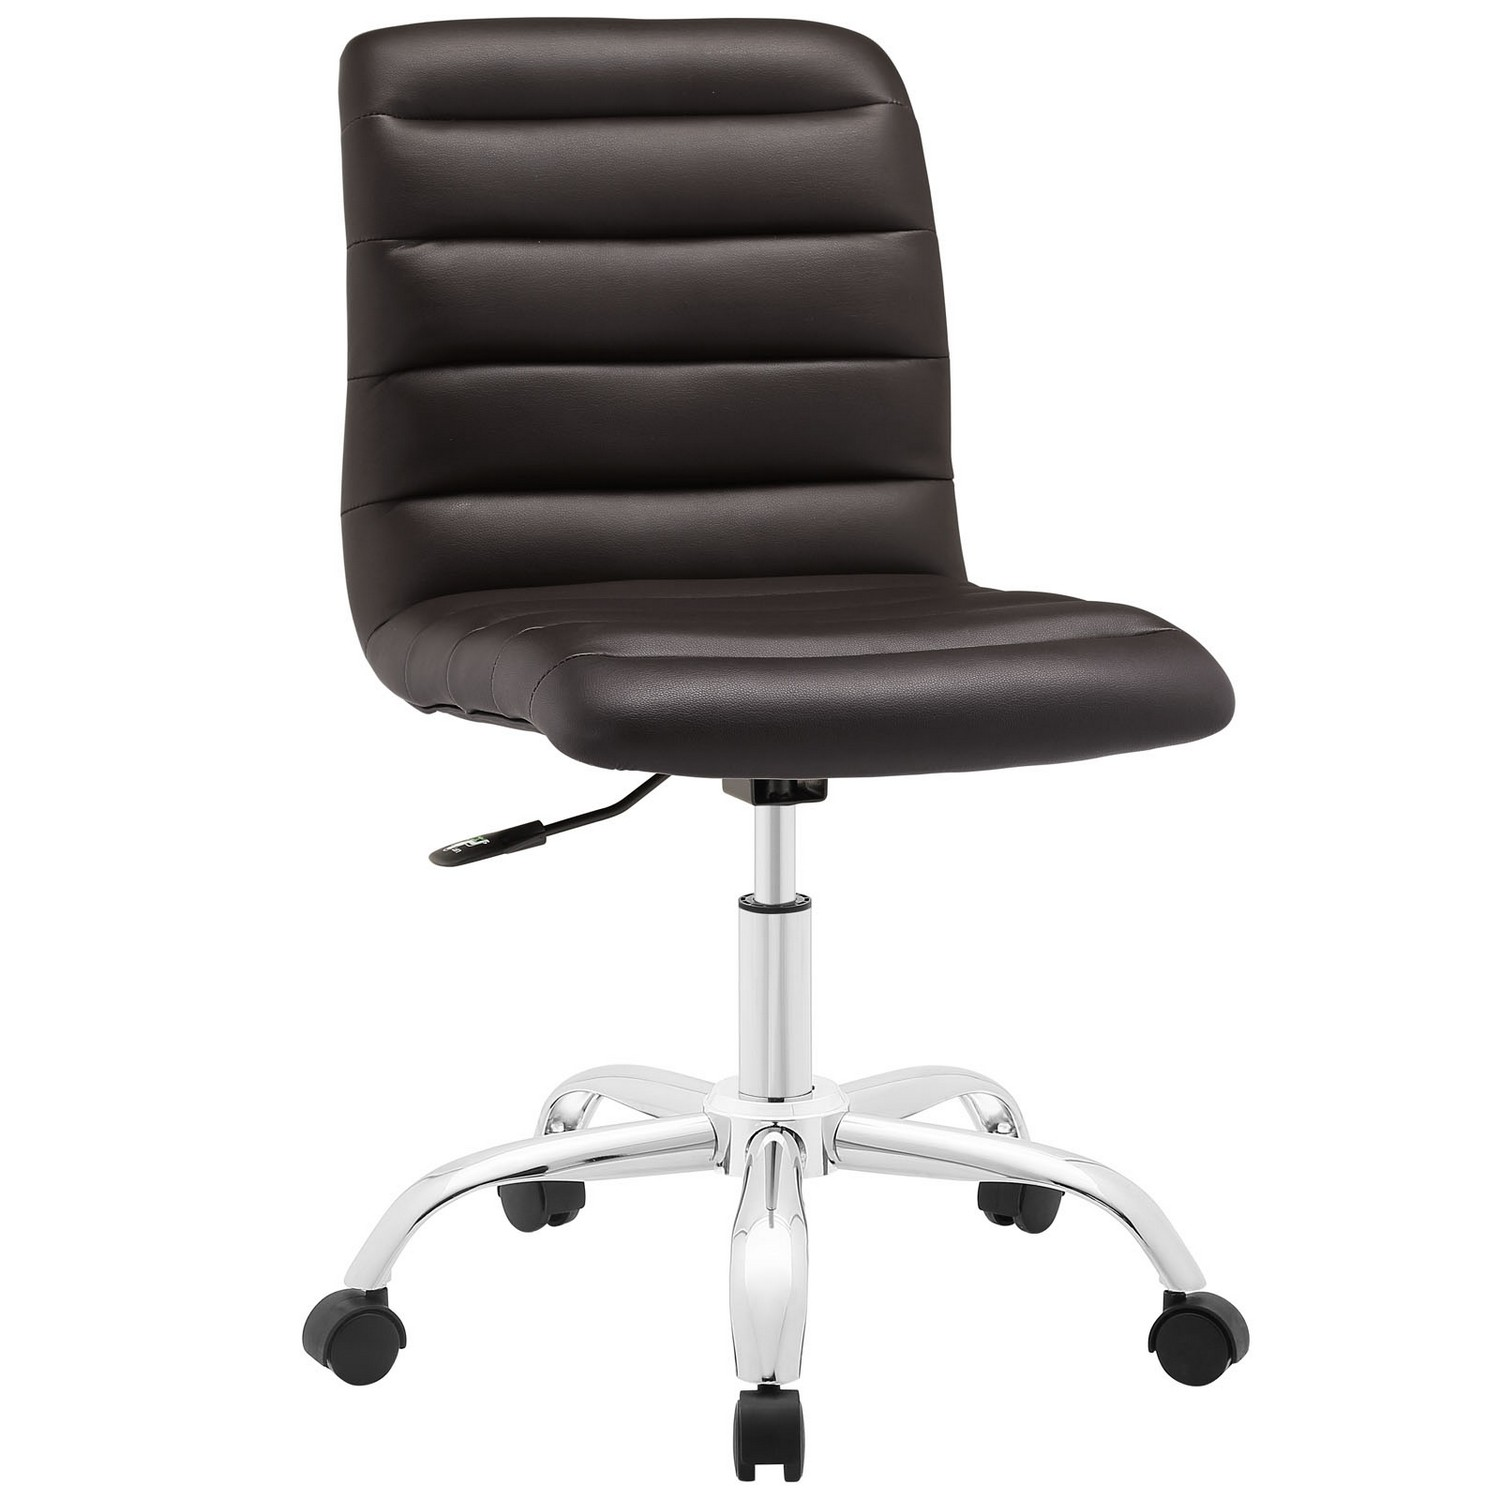 Modway Ripple Armless Mid Back Office Chair - Brown